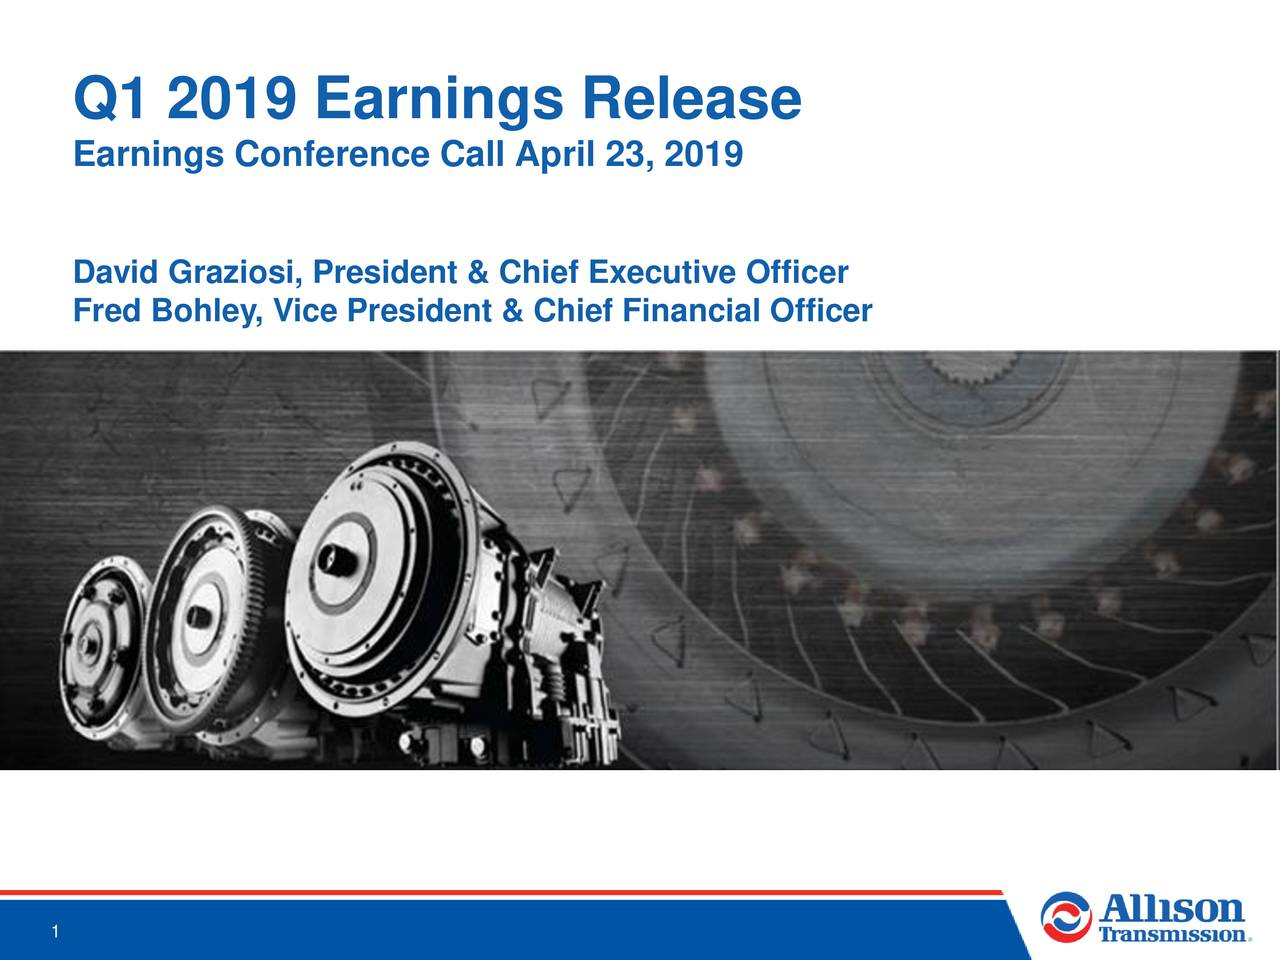 Q1 2019 Earnings Release